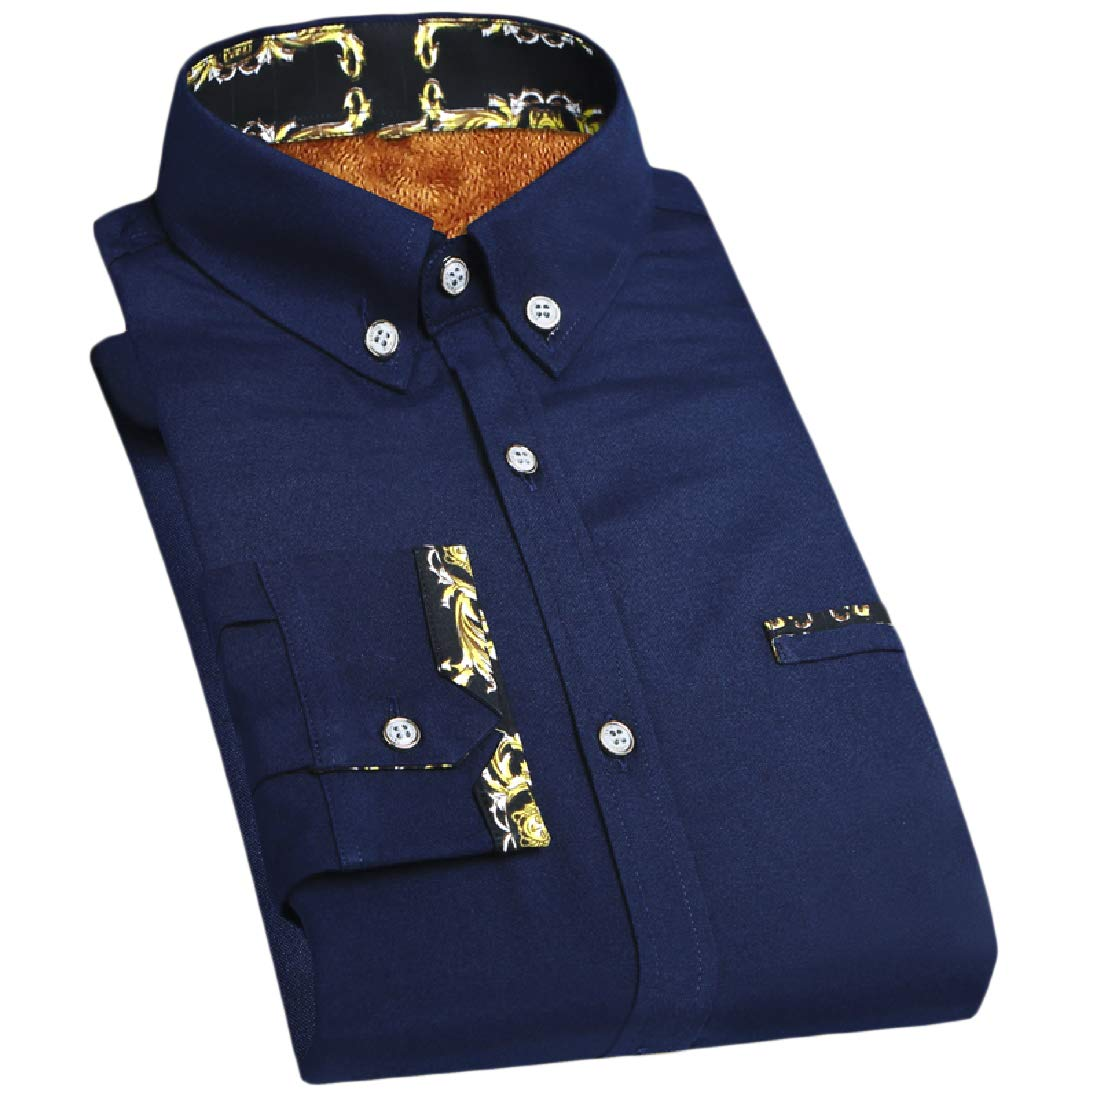 YUNY Mens Thicken Button Business Plus Size Fit Fleece Long-Sleeve Shirts Dark Blue S